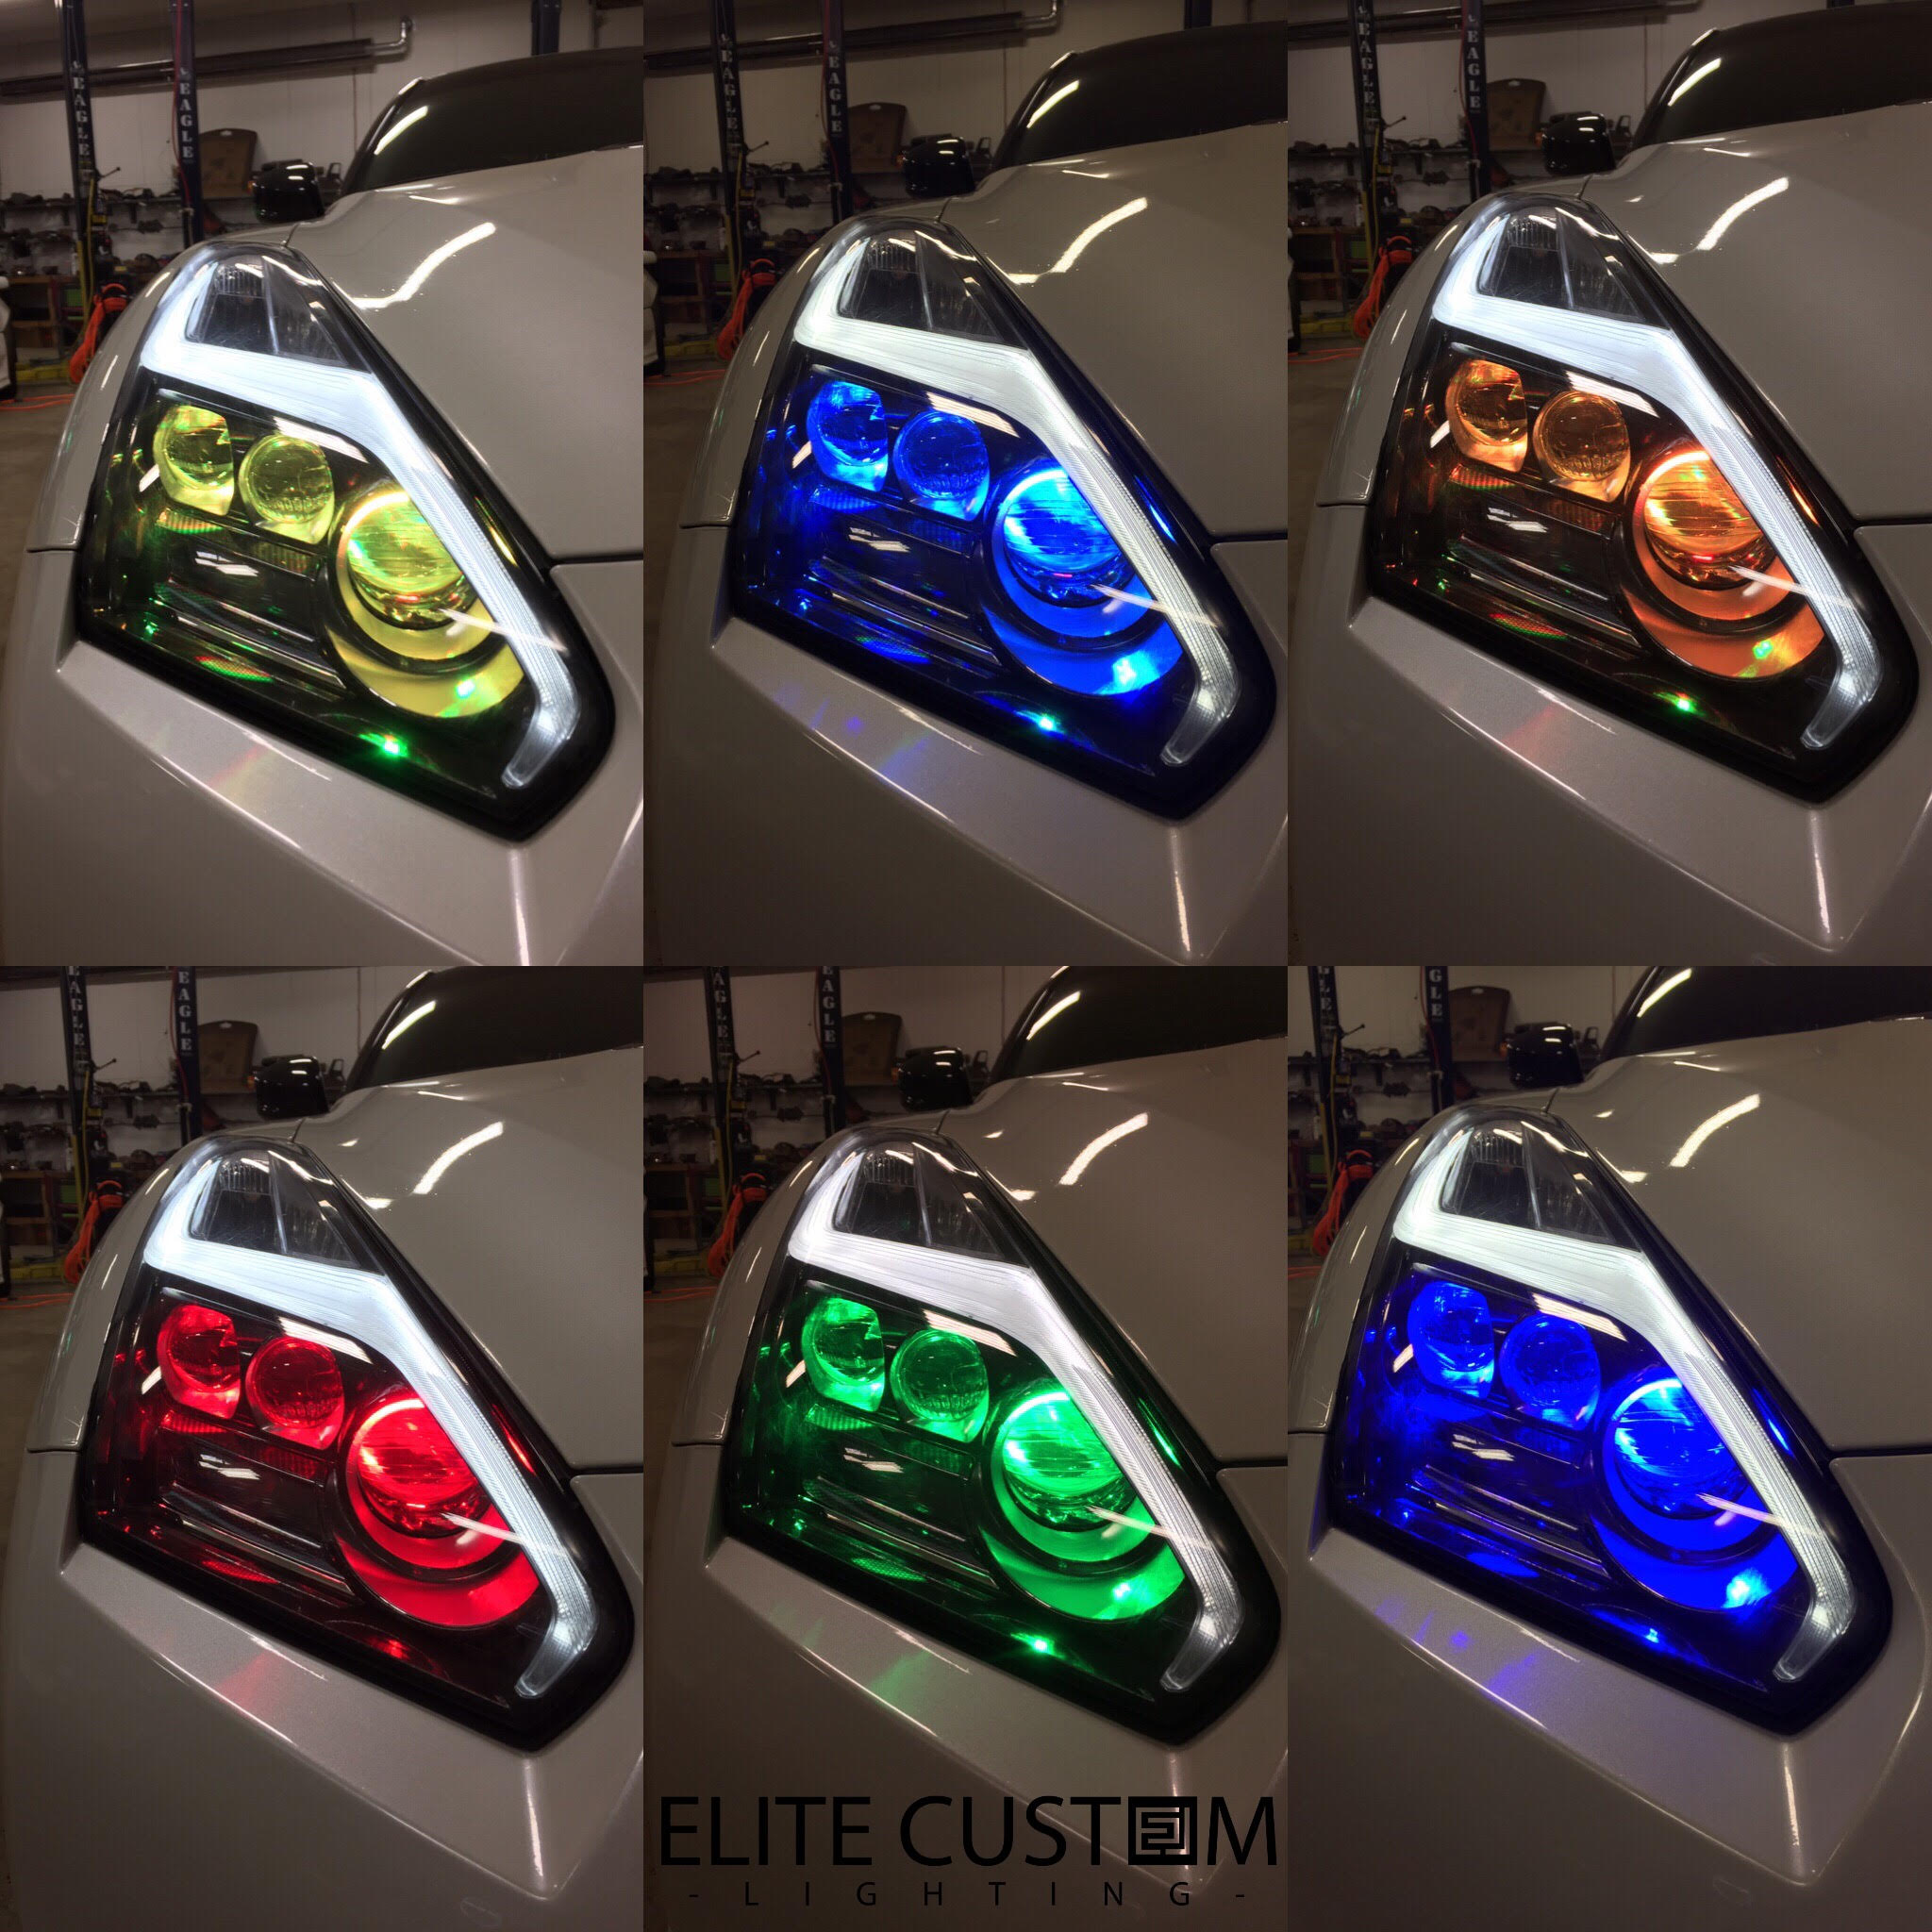 Elite%20Custom%20Lighting_GTR.jpg